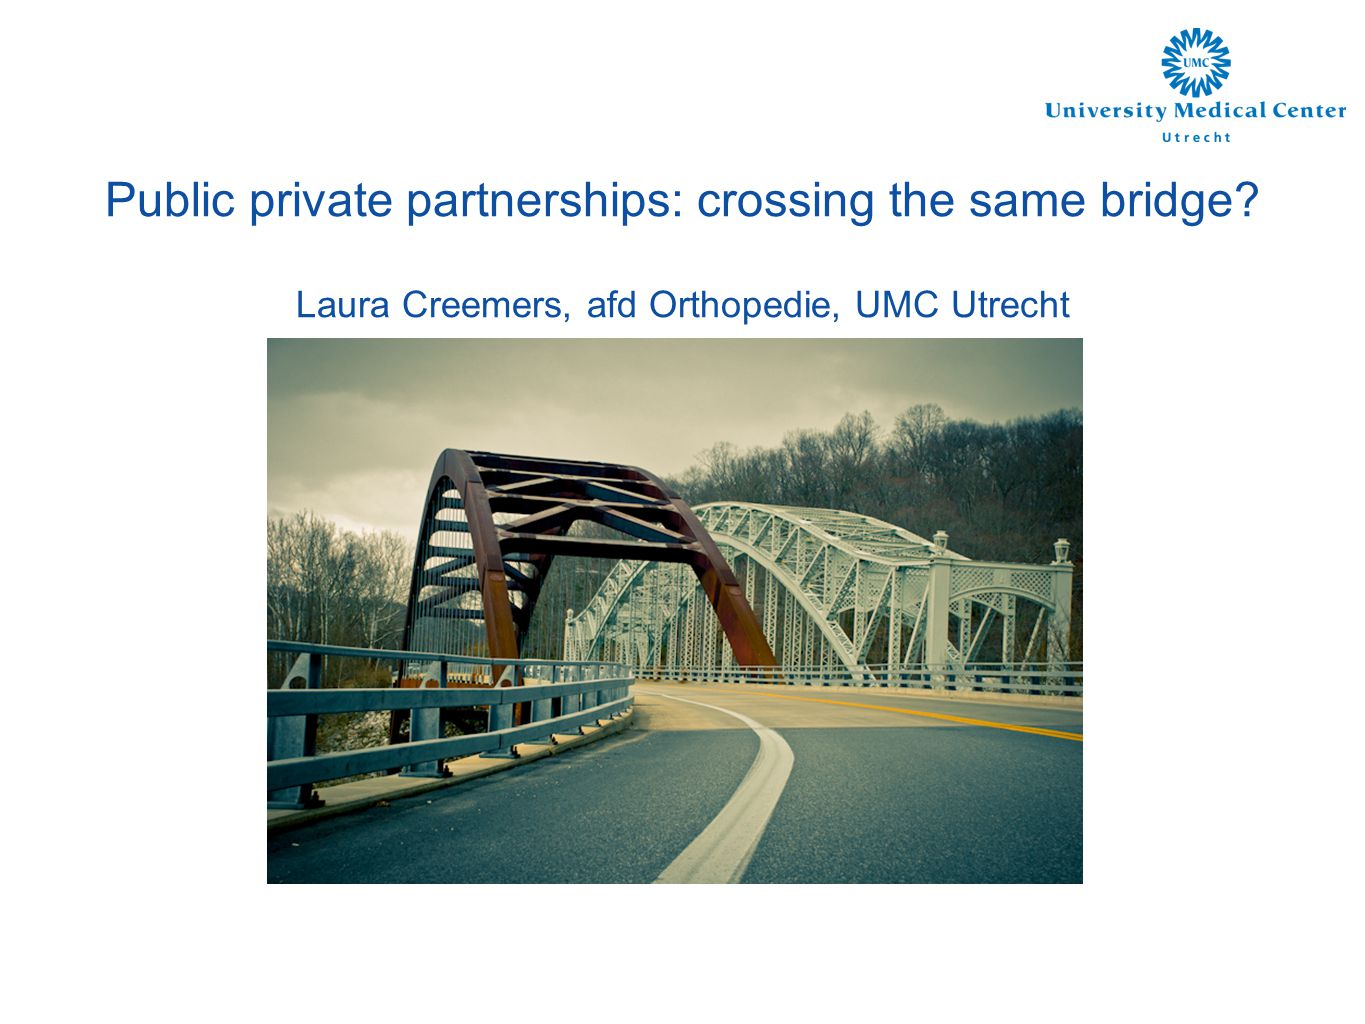 Public private partnerships: crossing the same bridge? Laura Creemers, afd Orthopedie, UMC Utrecht